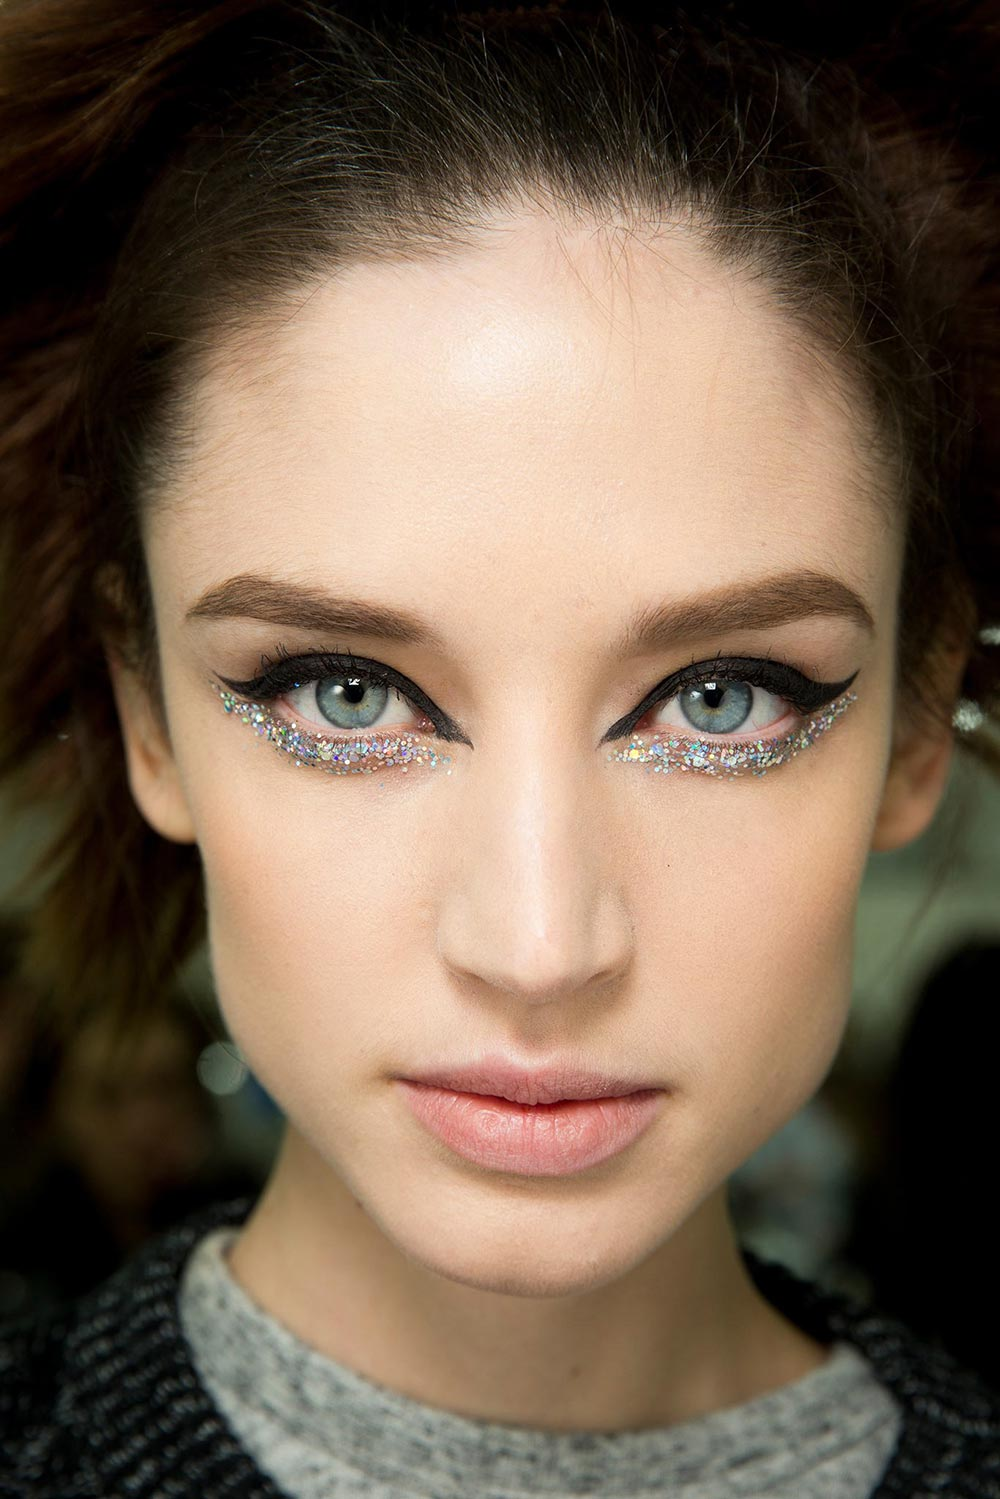 Chanel Spring 2014 Couture runway makeup